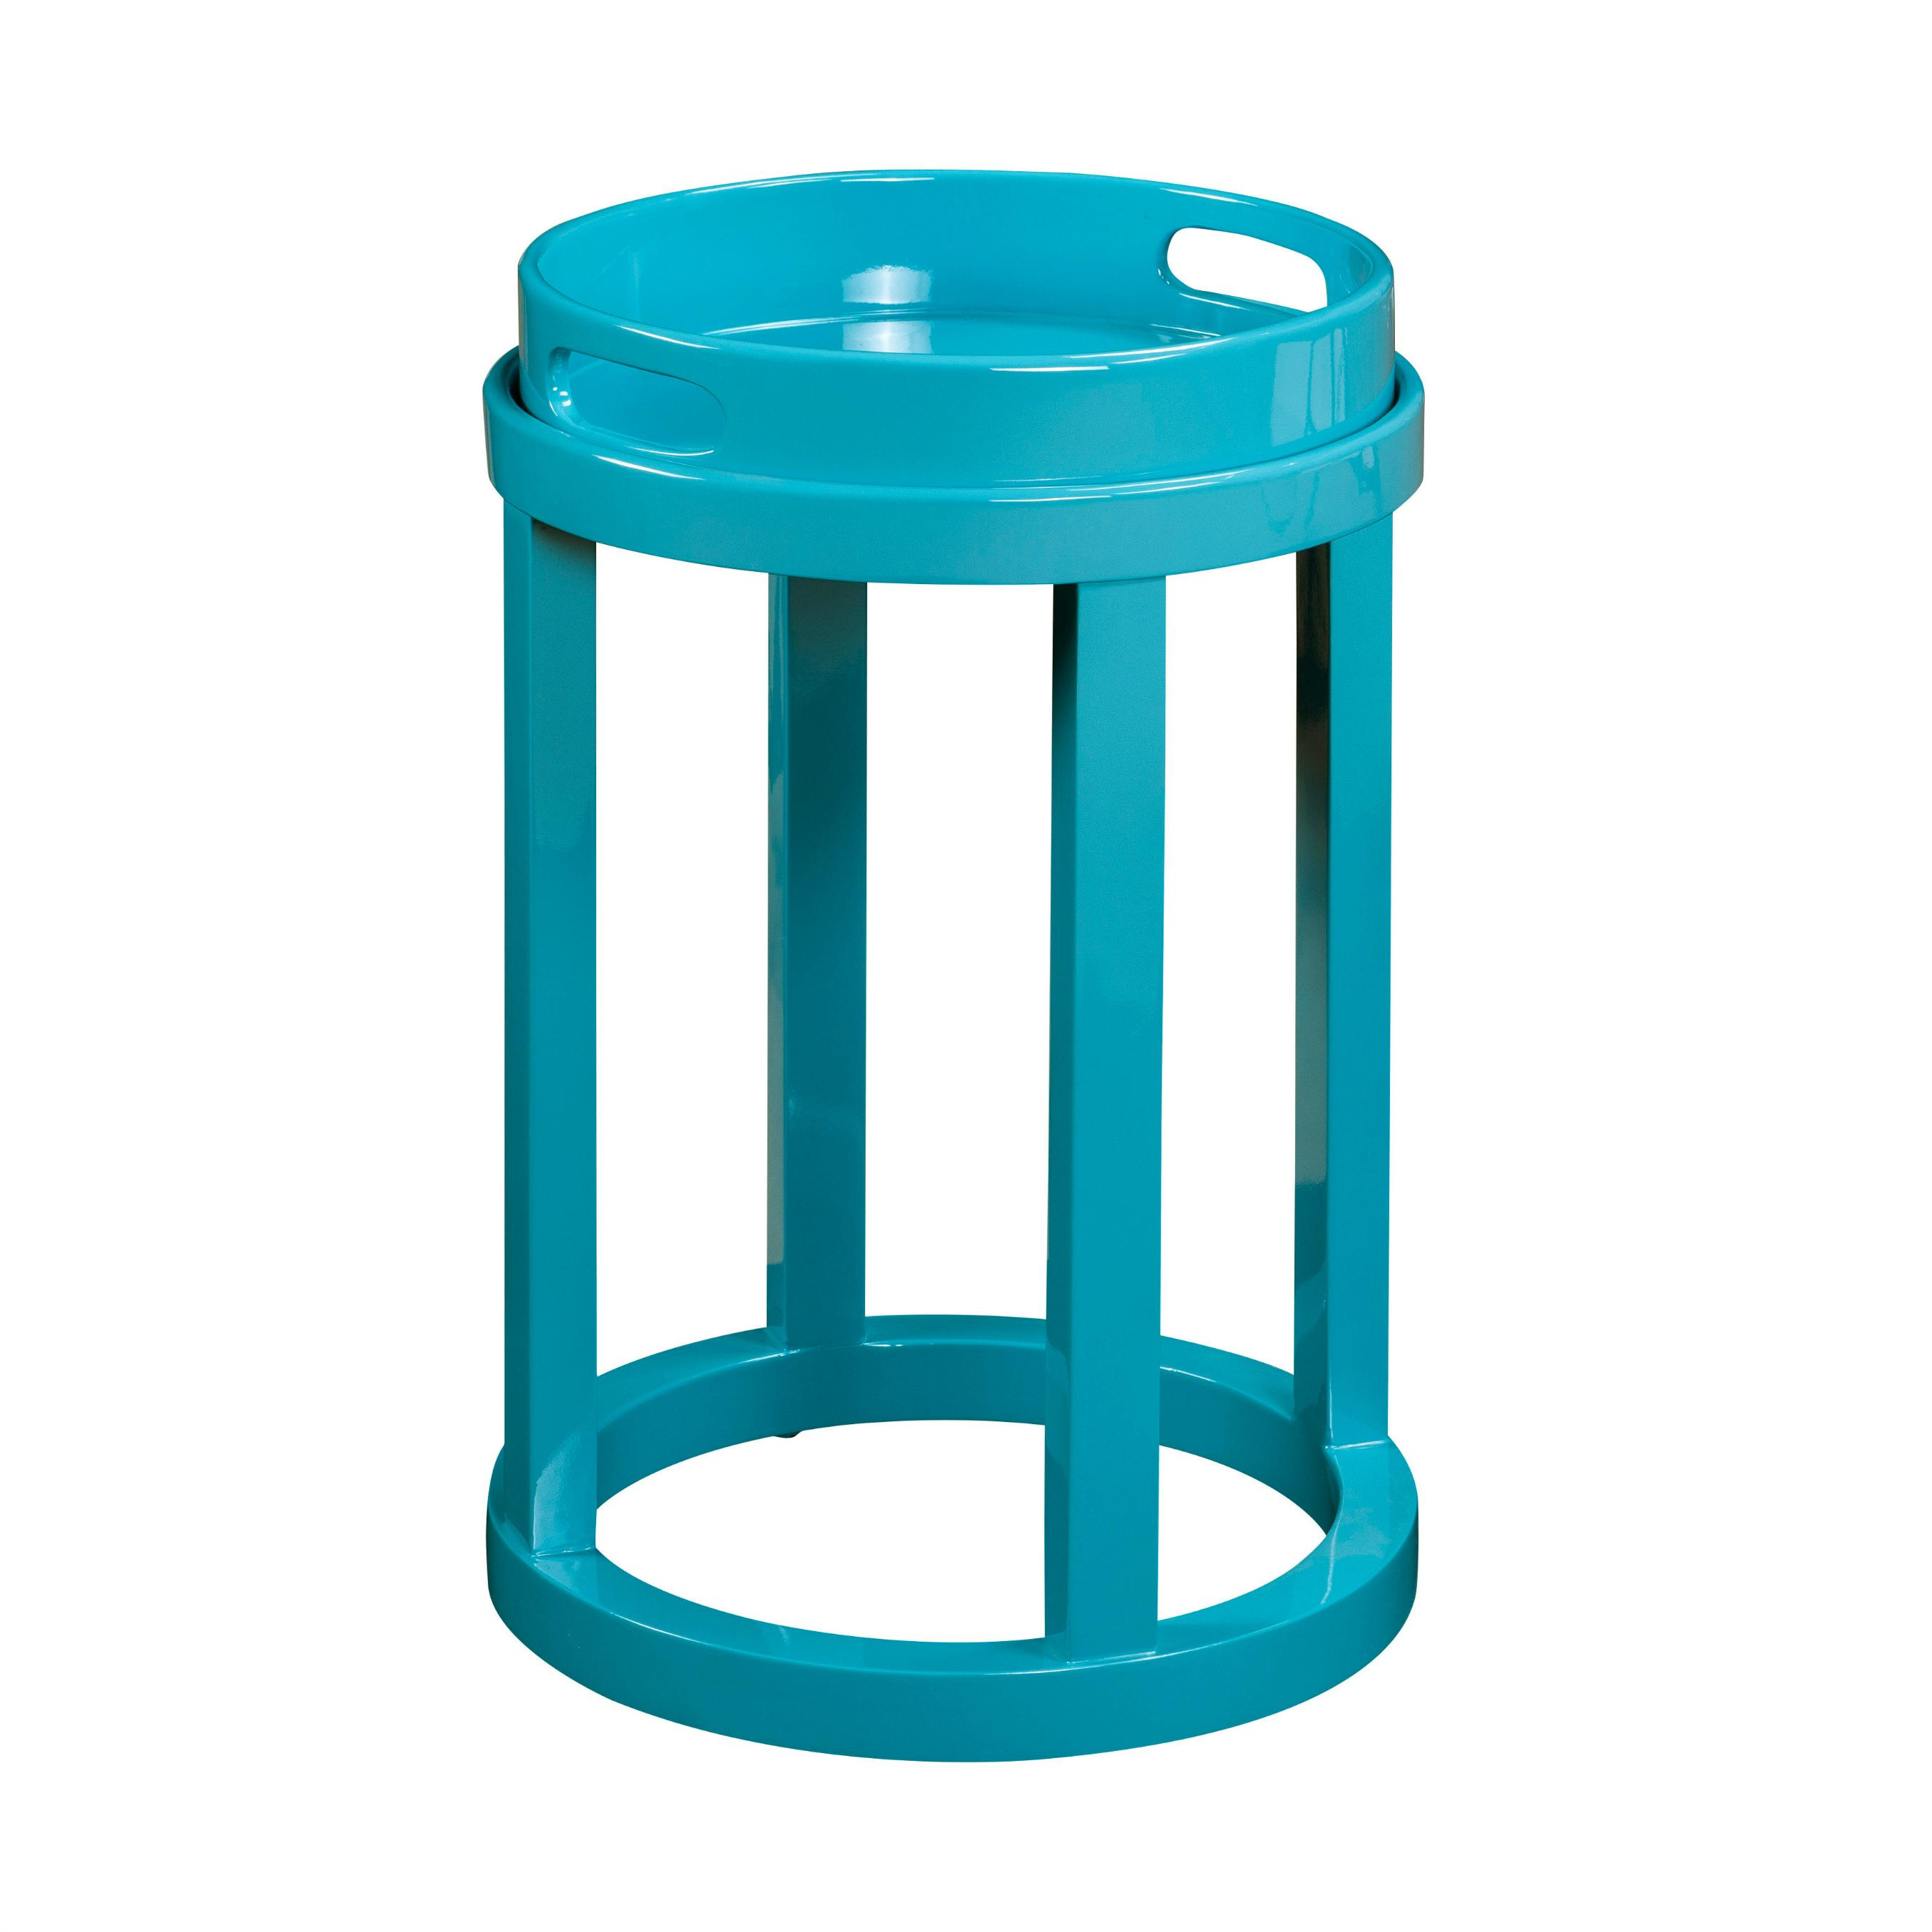 pulaski blair round accent table aqua blue lacquer knotty pine dining set silver drum side contemporary chandeliers small tablecloth patio bistro wrought iron end tables plastic